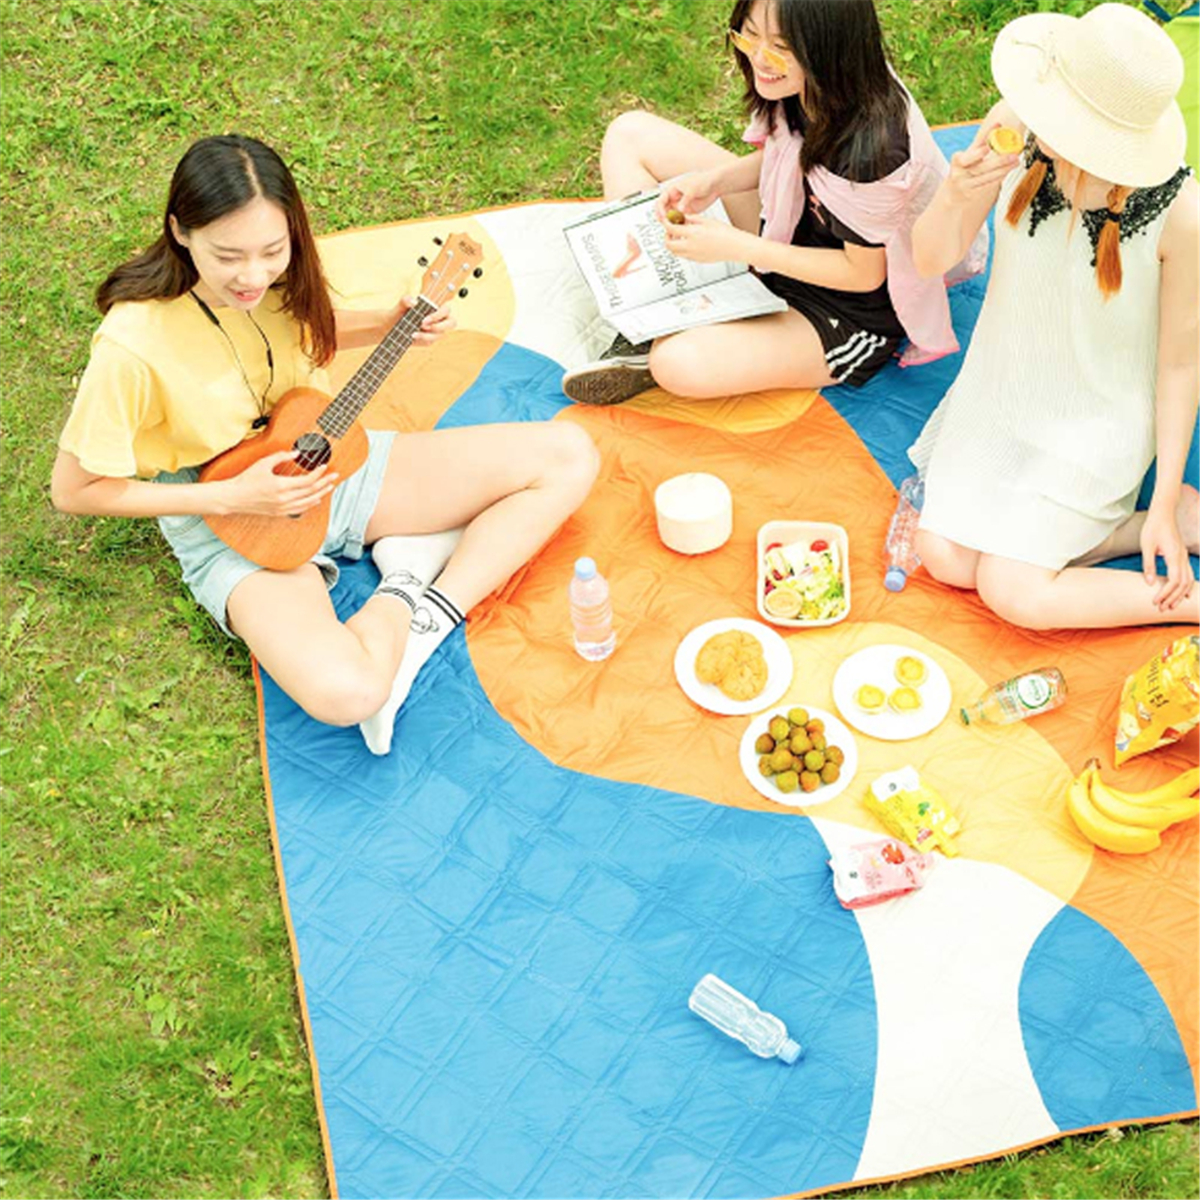 ZENPH 2x1.8m Picnic Mat Folding Moisture Proof Waterproof Blanket Beach Pad Outdoor Camping from xiaomi youpin